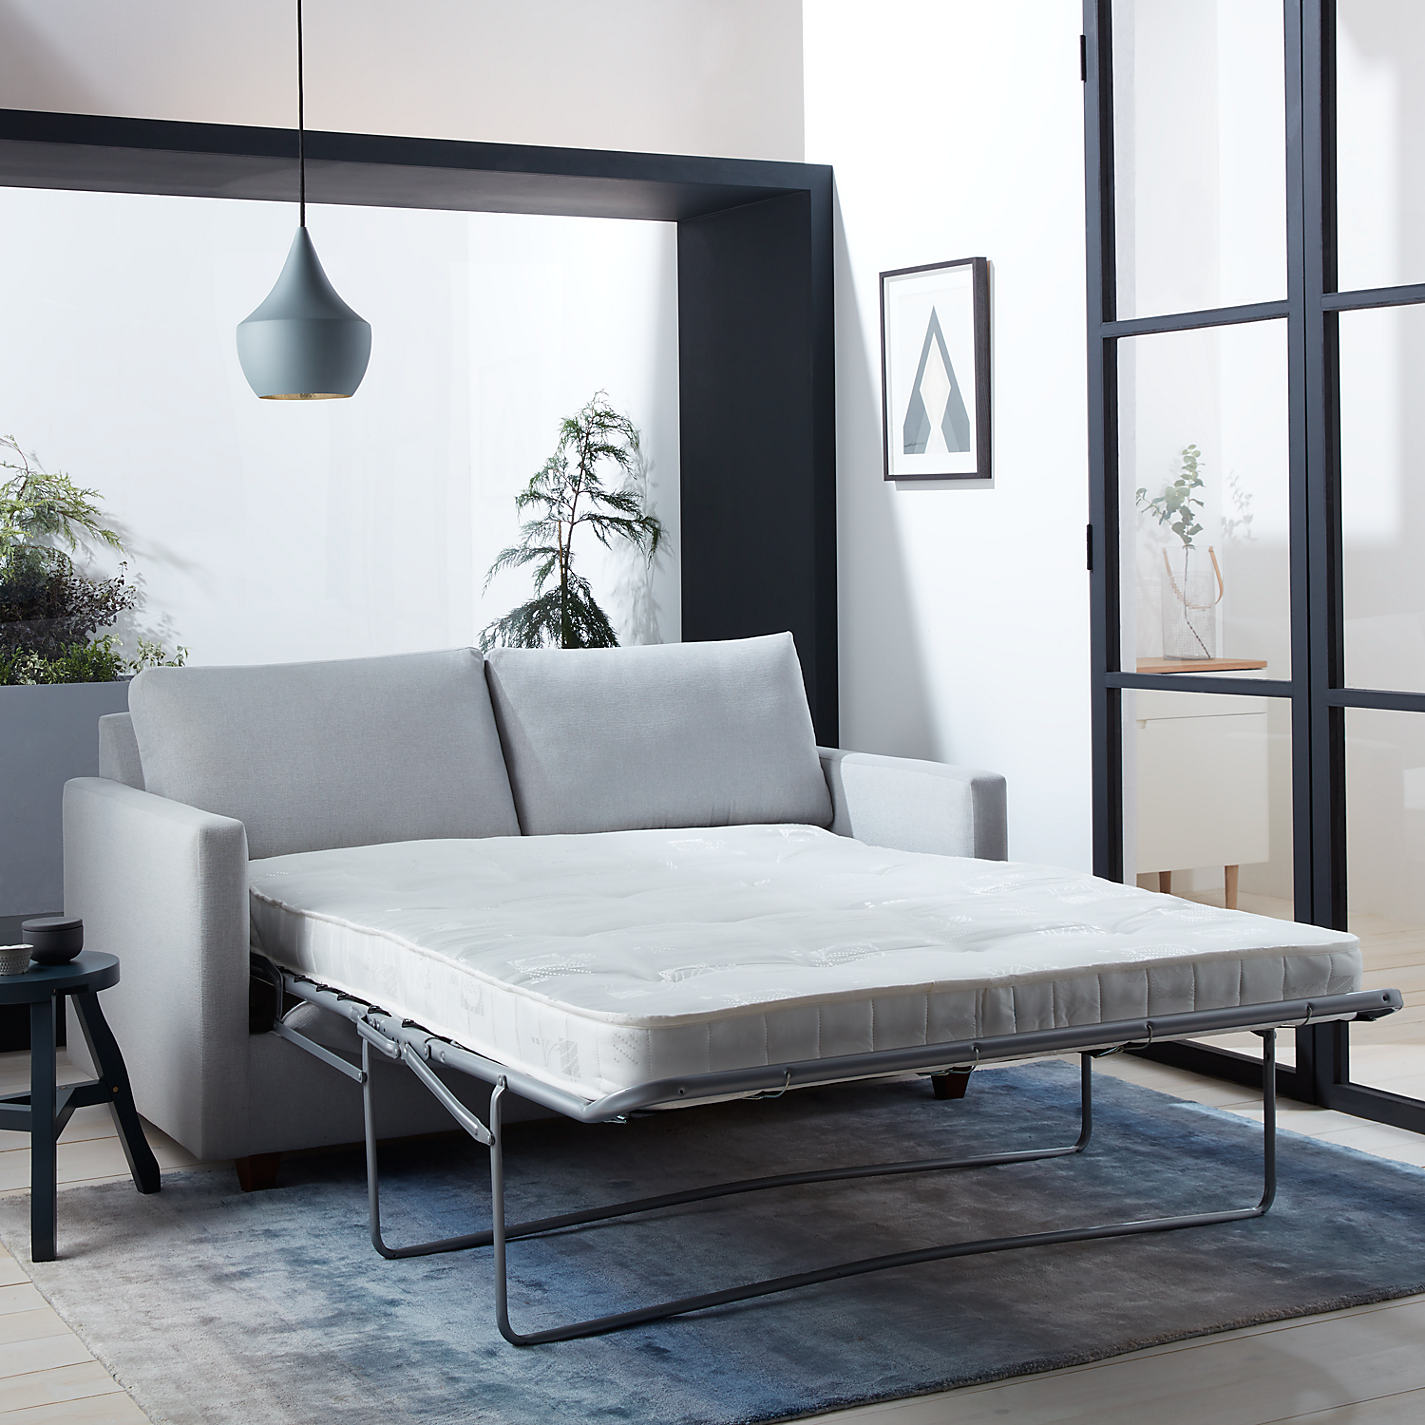 Sofa beds with sprung mattress -  Buy John Lewis Barlow 2 Seater Small Sofa Bed With Pocket Sprung Mattress Erin Midnight